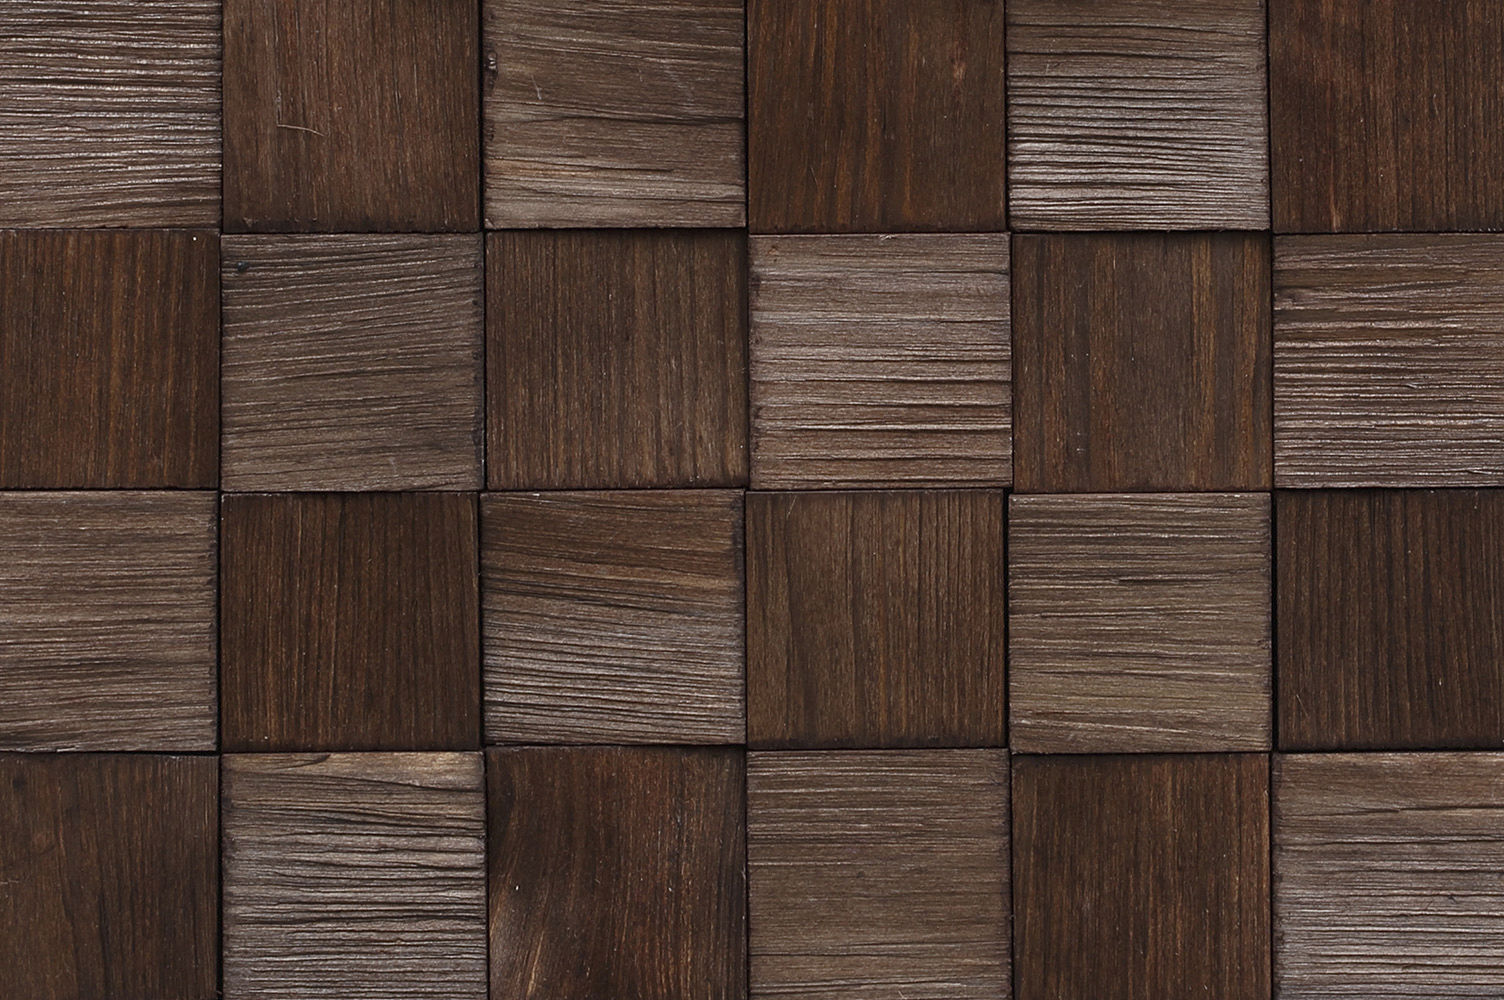 Cover Decorative Panel Wood Wall Mounted Textured Wood